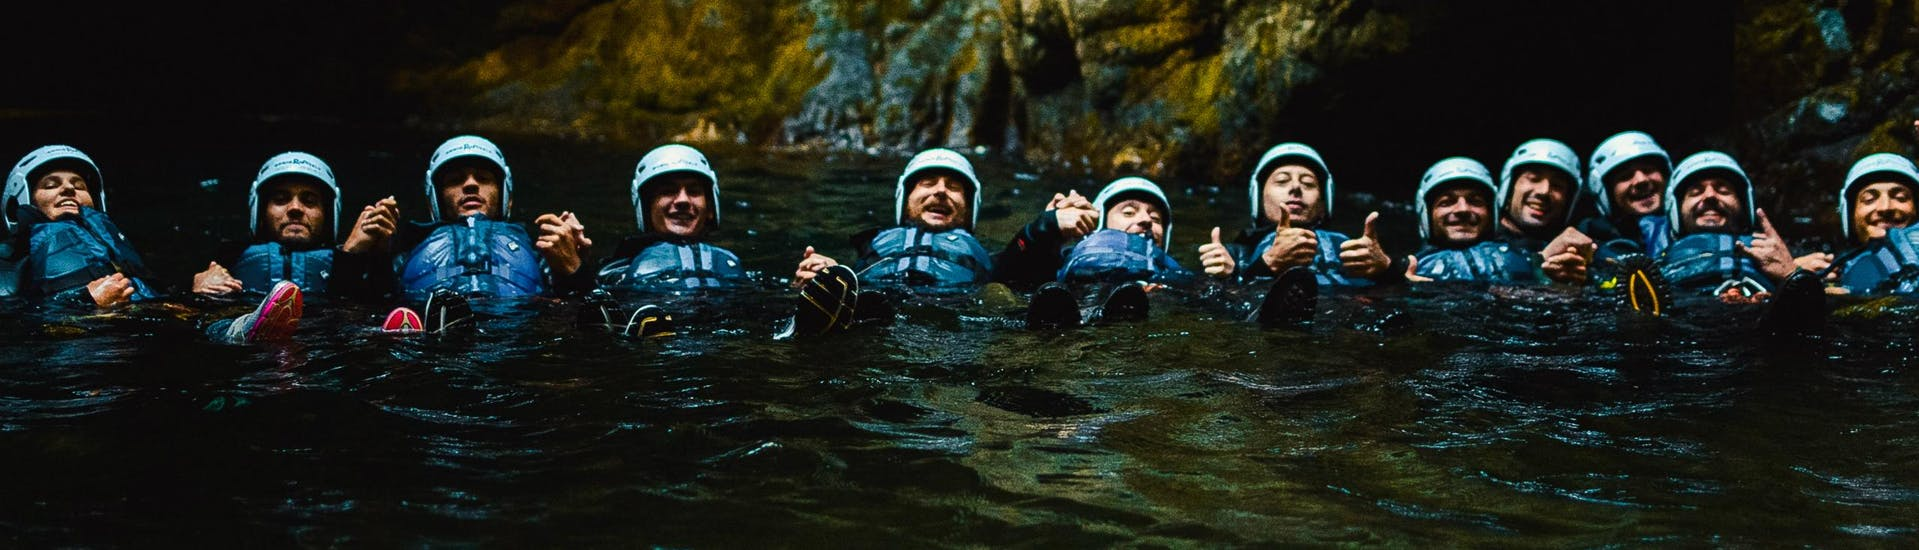 Easy Canyoning in the Sesia Gorge